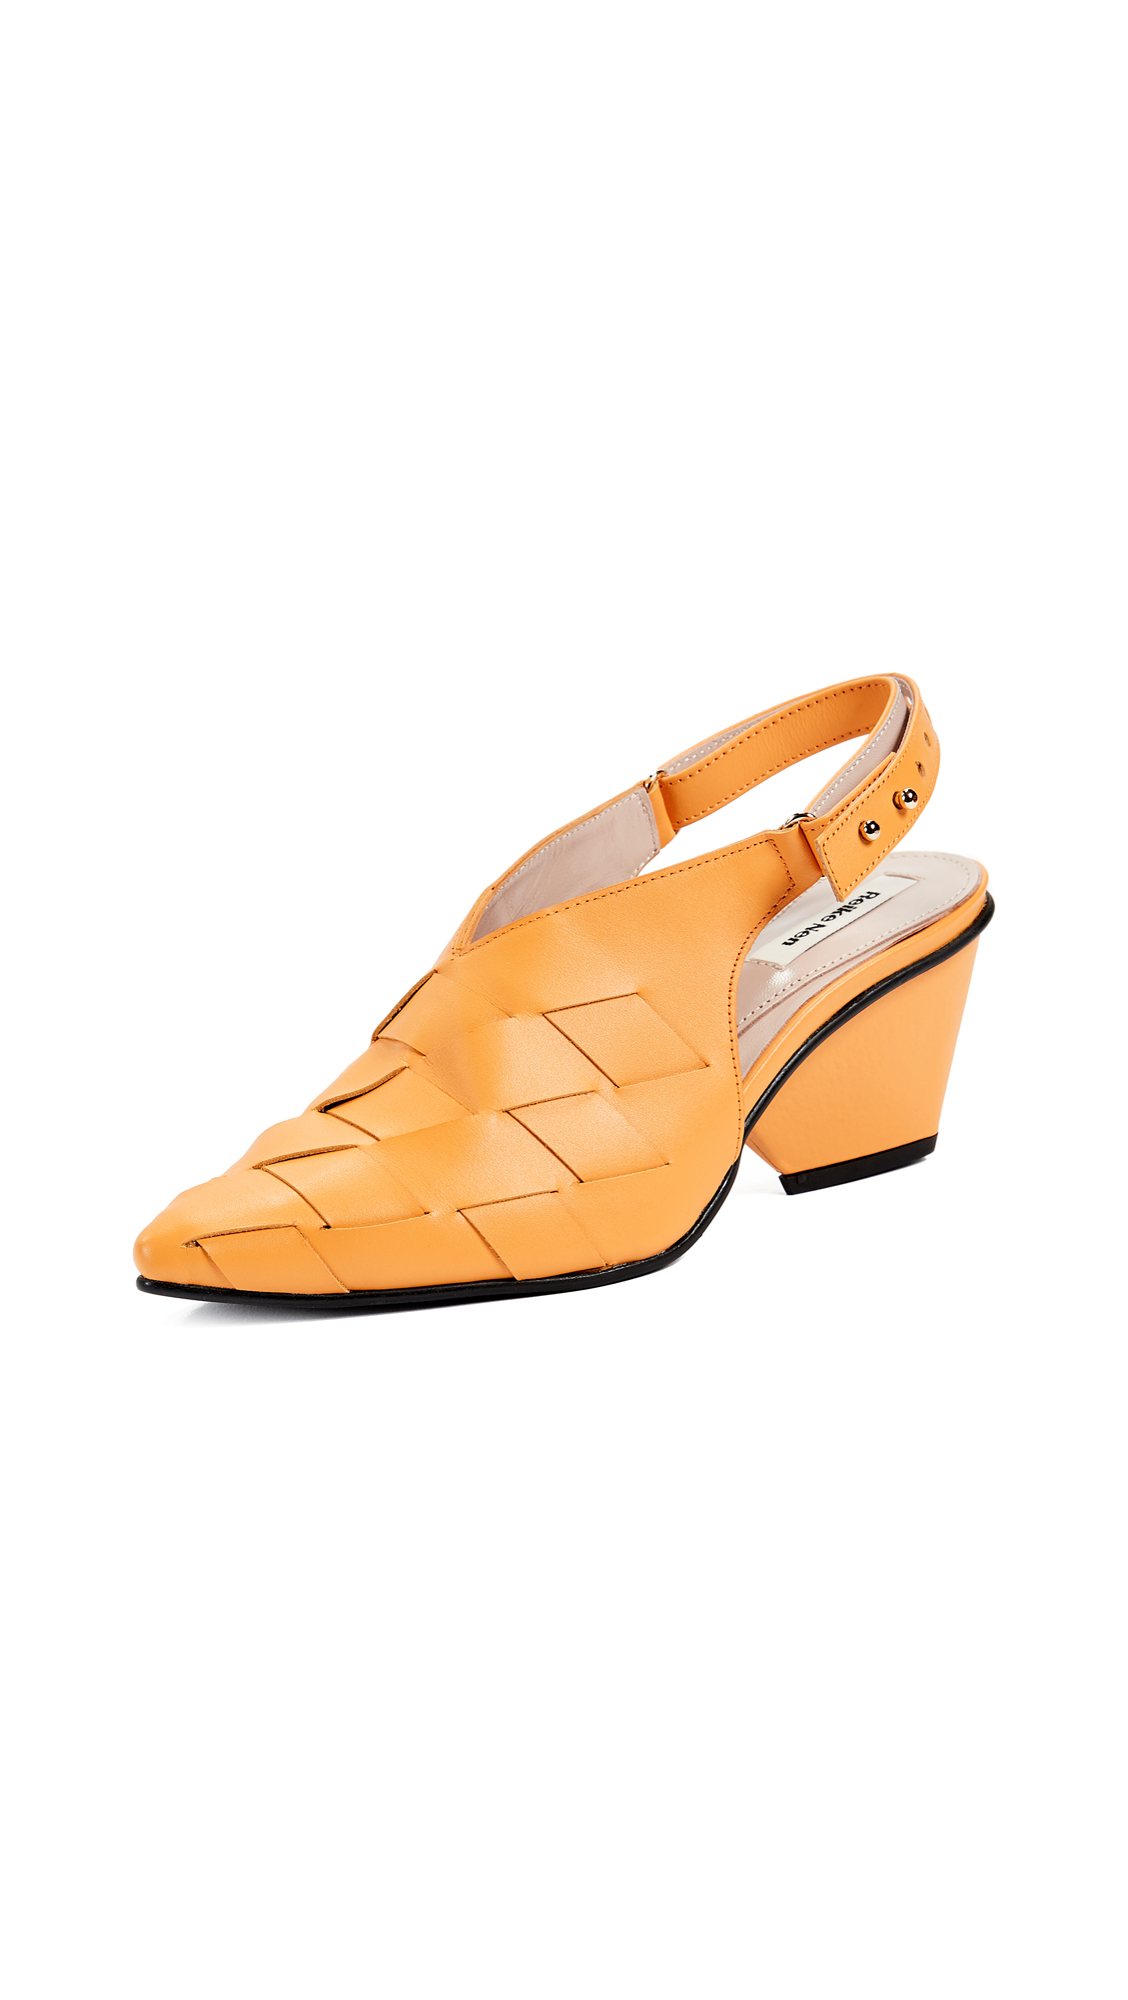 Reike Nen Weaving Middle Slingback Pumps - Mandarin